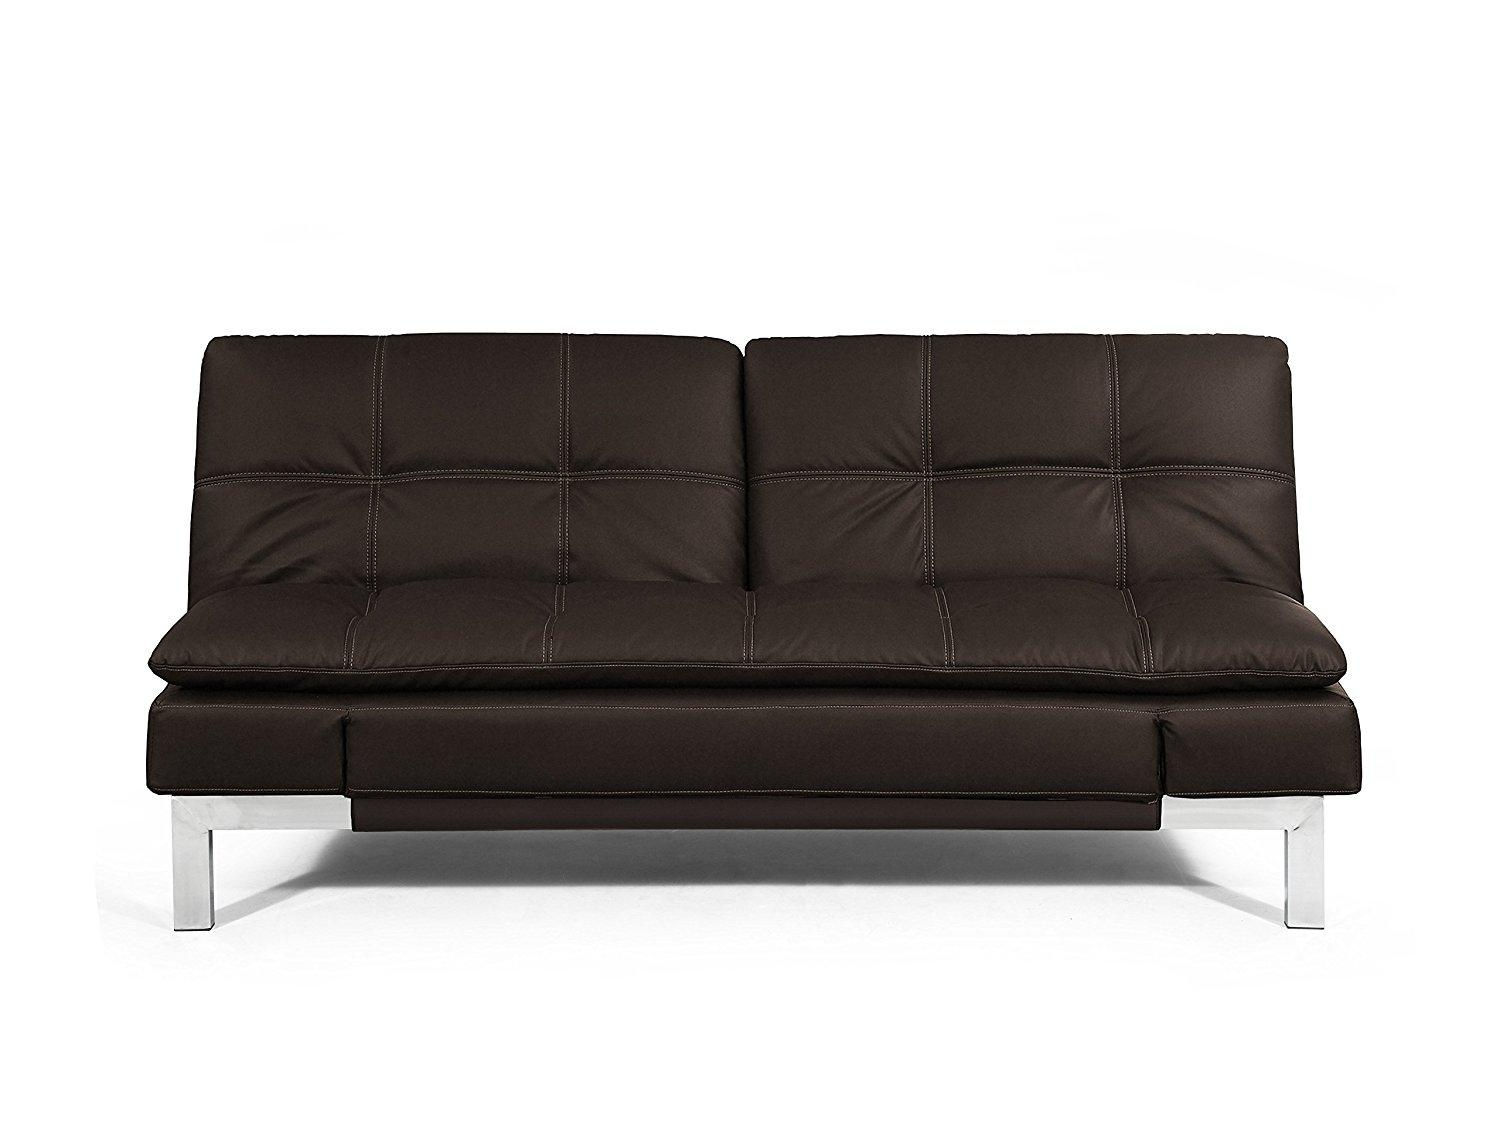 Euro Lounger Sofa With Design Ideas 28626 | Kengire Intended For Euro Lounger Sofa Beds (Image 8 of 20)